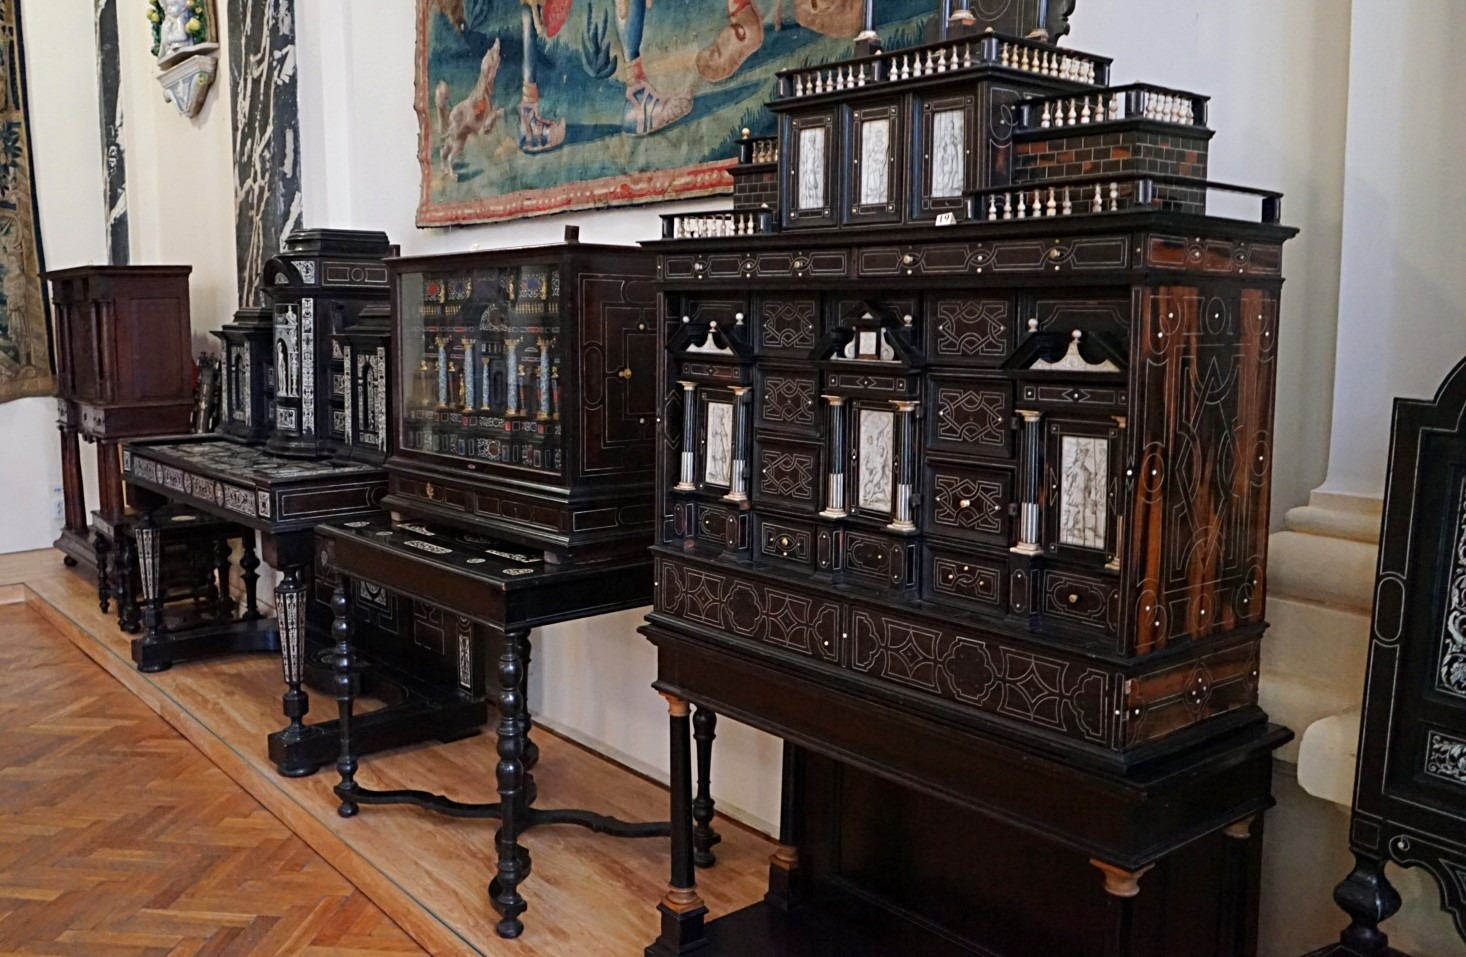 Inside the museum of Ethnography in Lviv